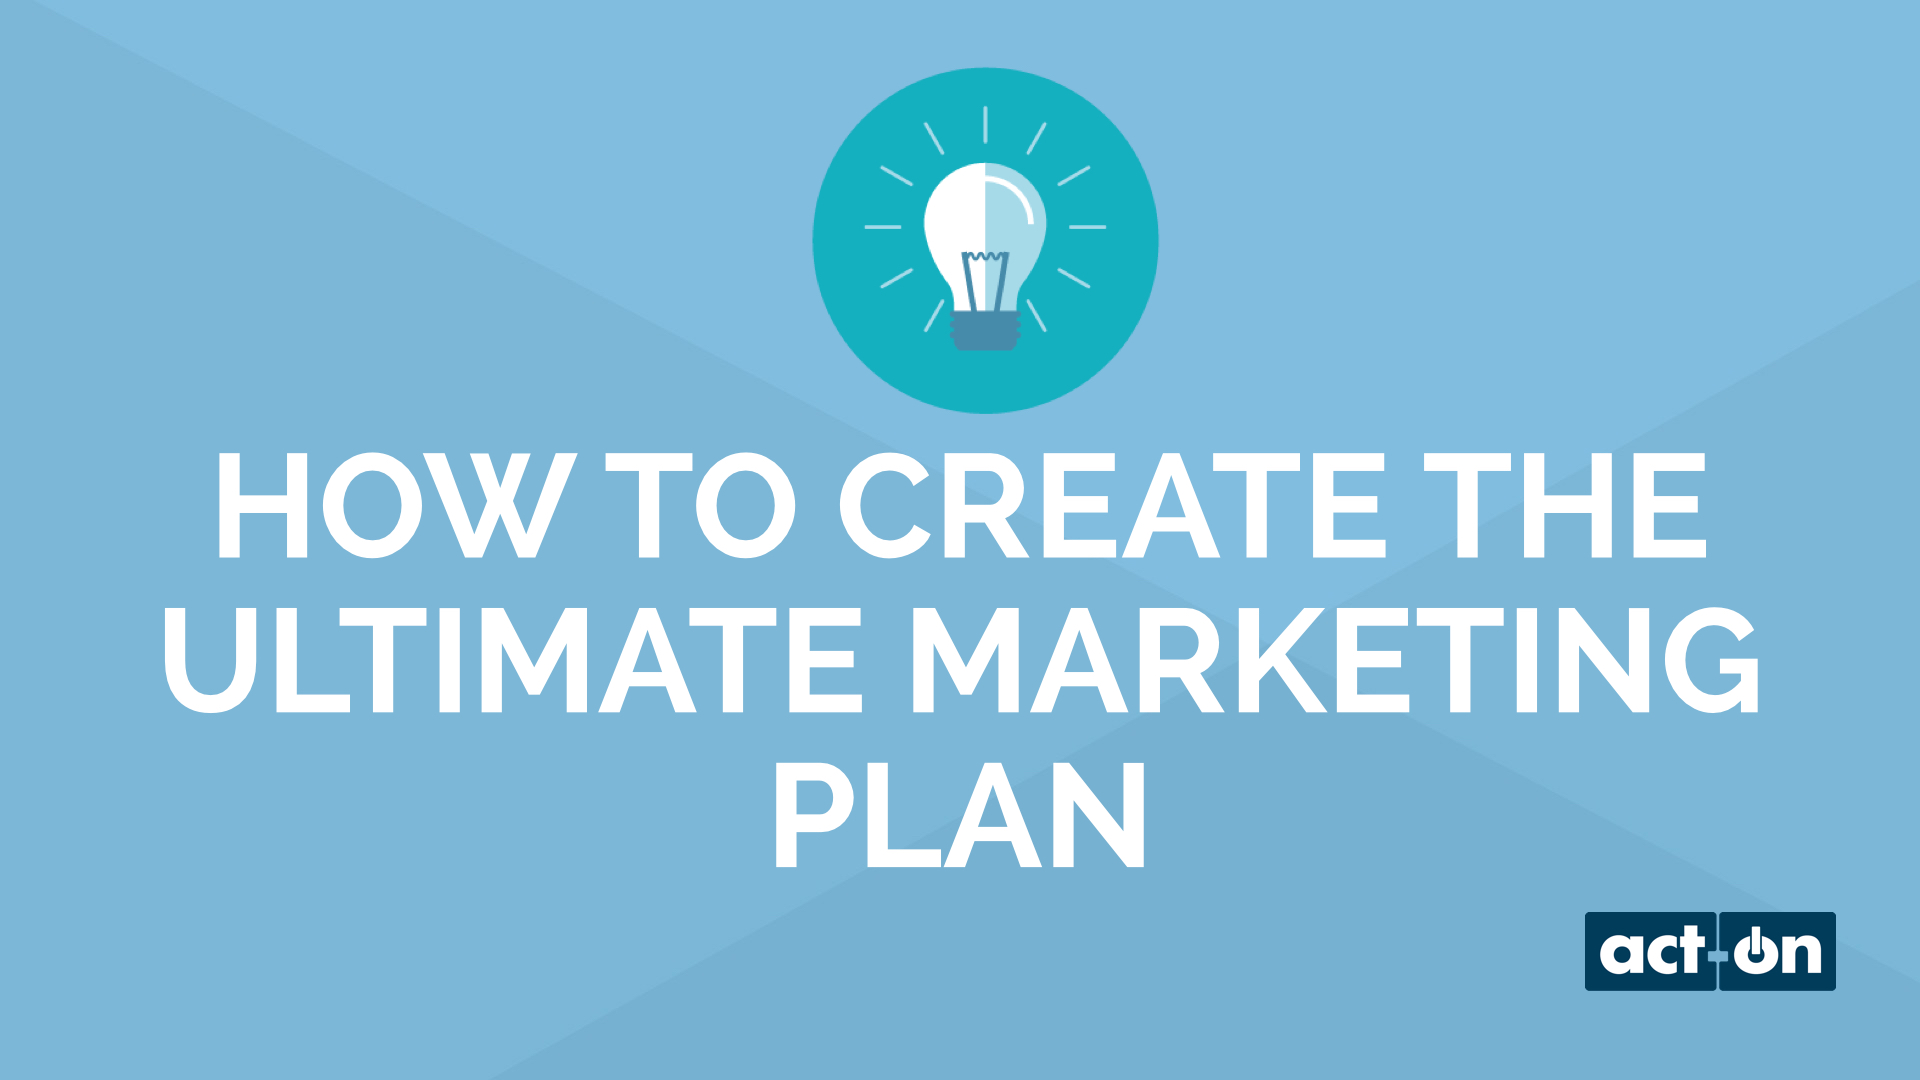 How to Create the Ultimate Marketing Plan - 15 Minute Video